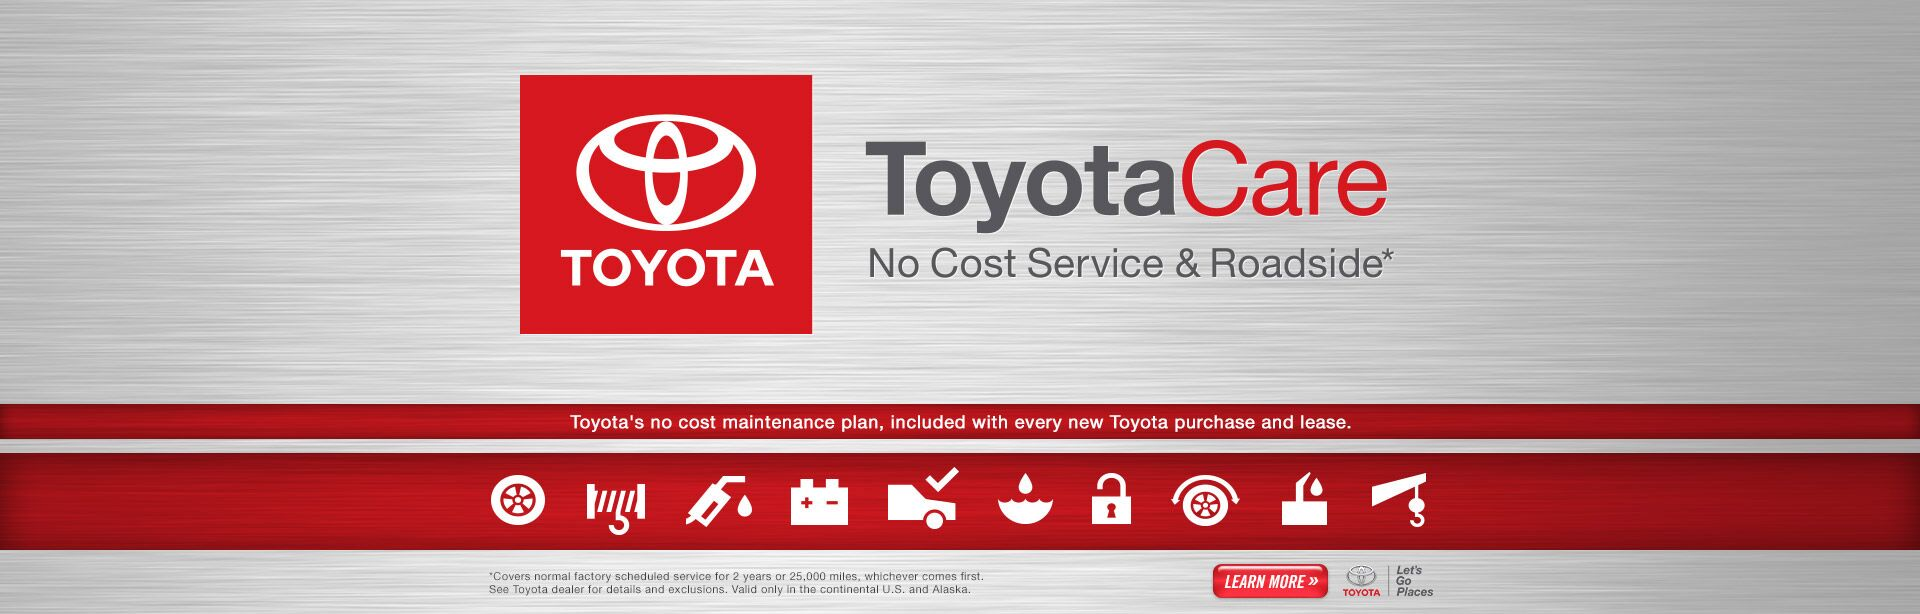 National - ToyotaCare